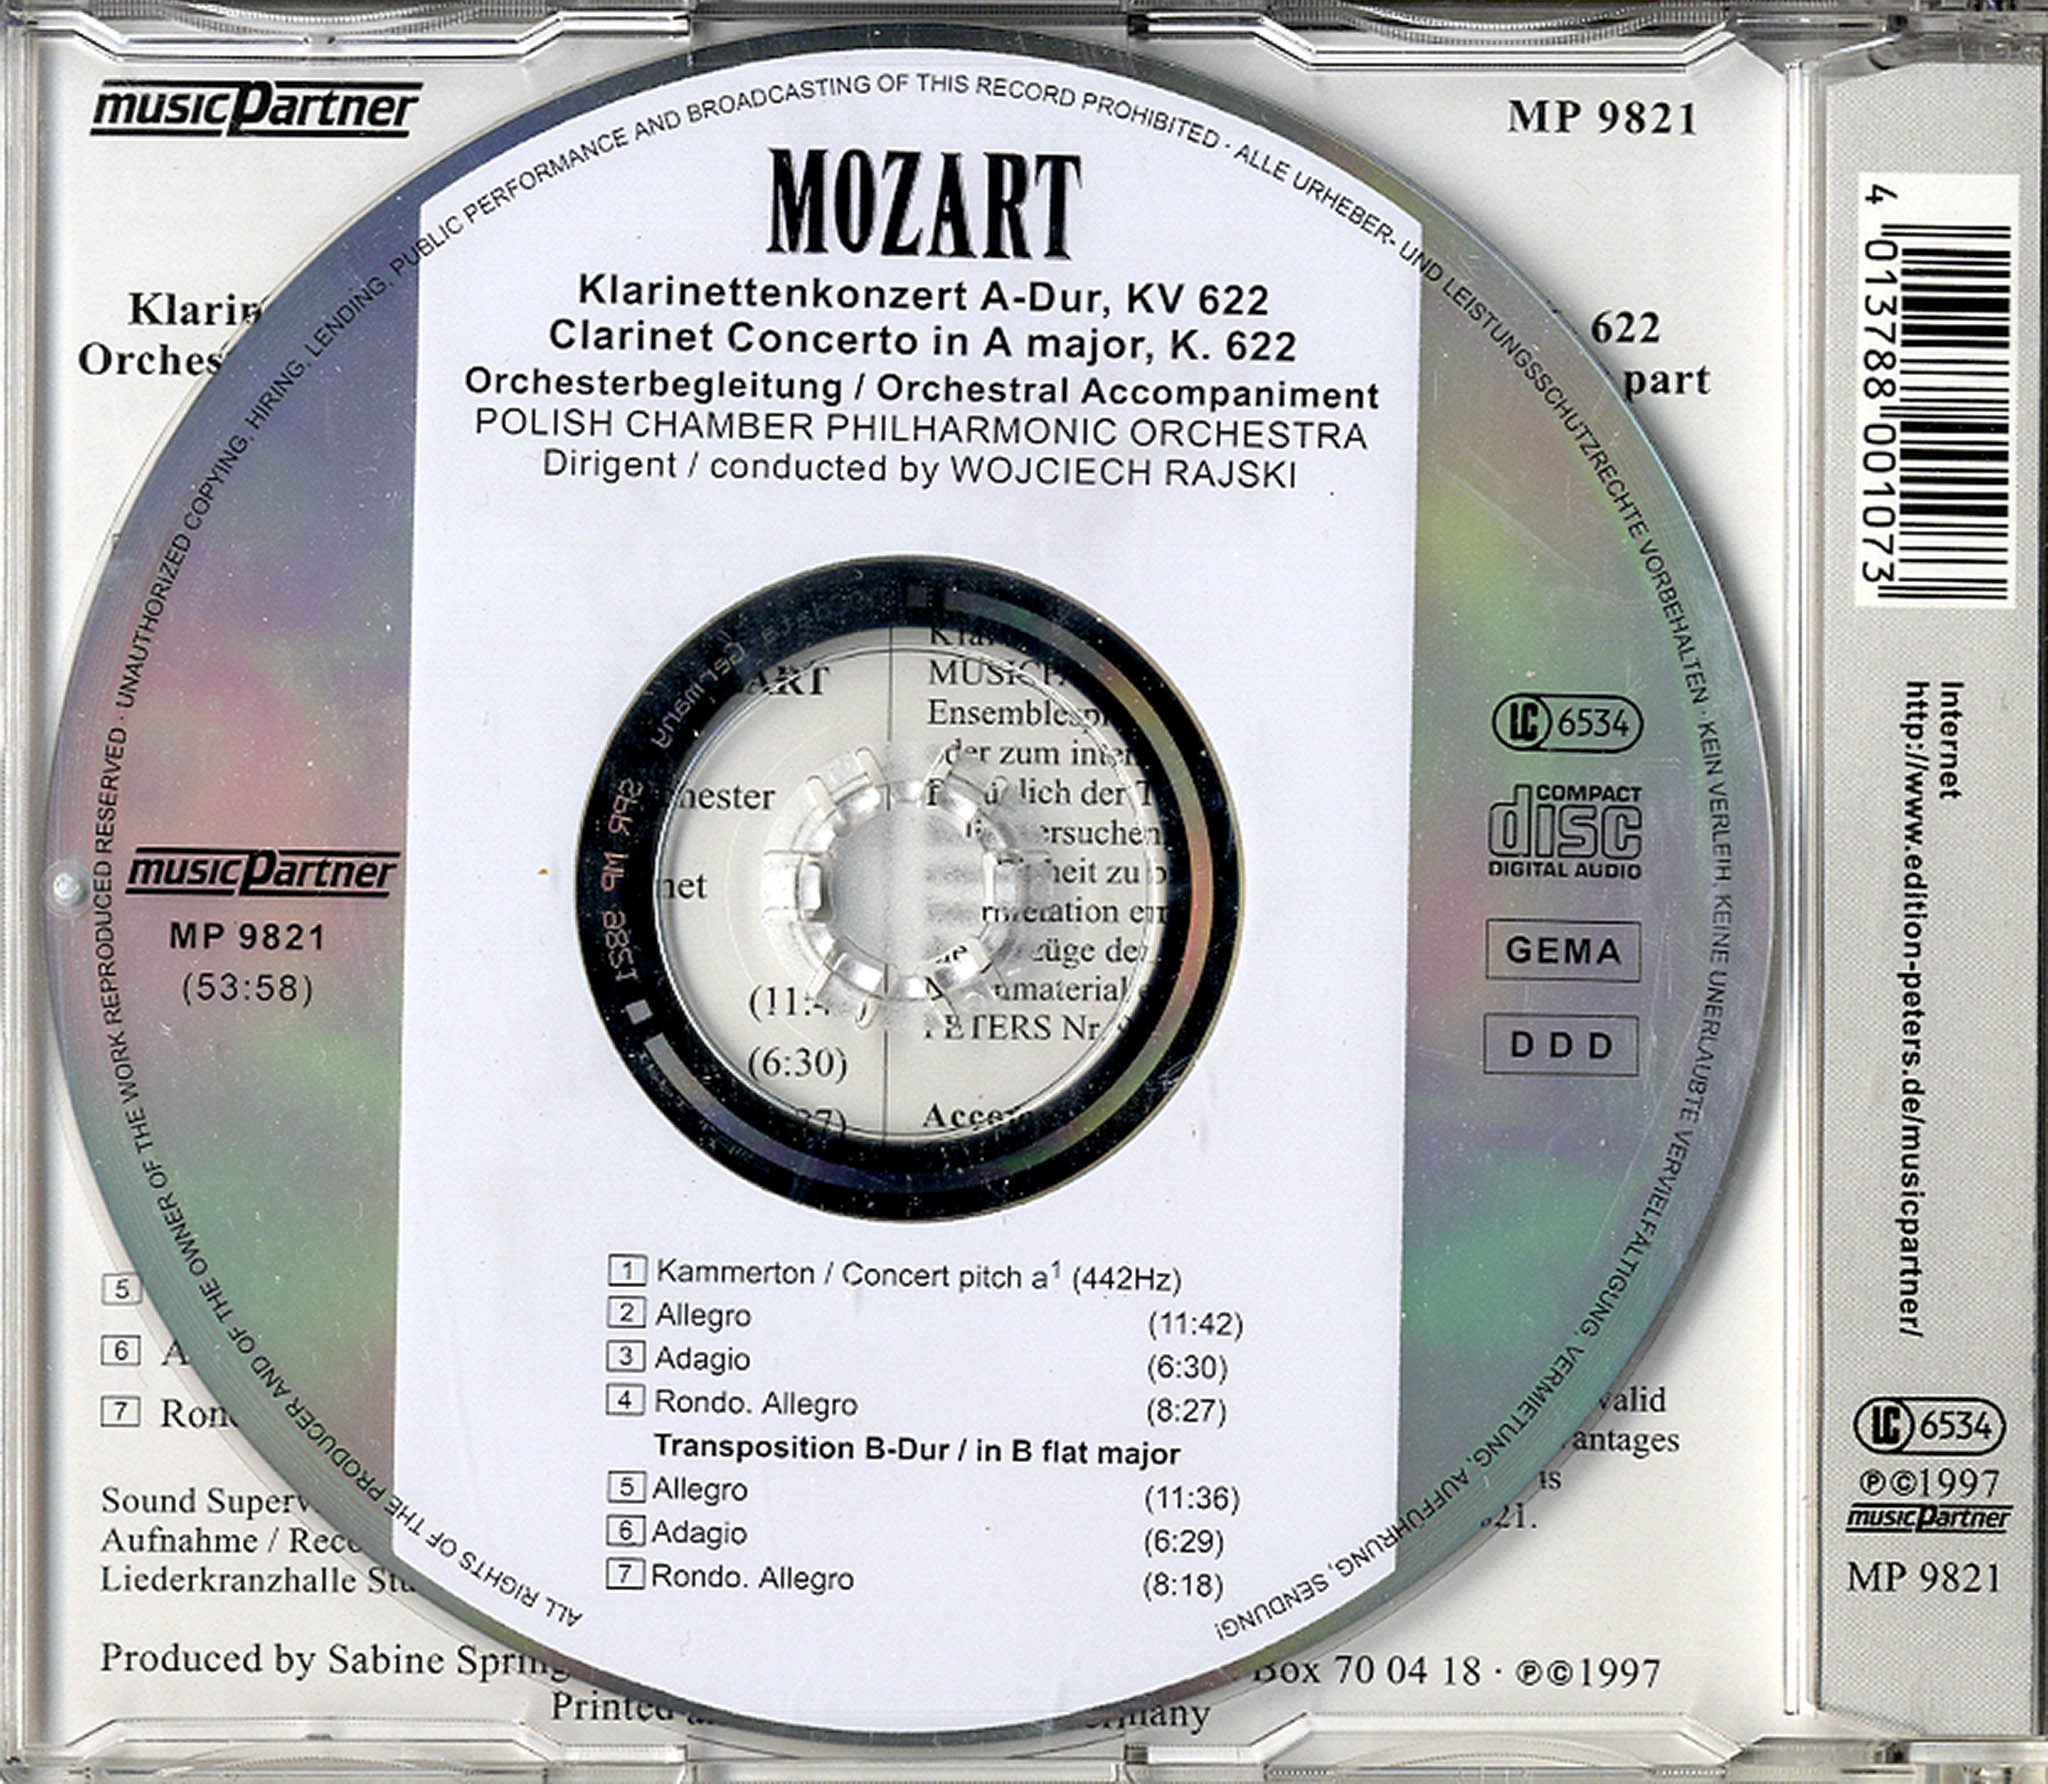 Clarinet Concerto in A Major, K. 622 Audio